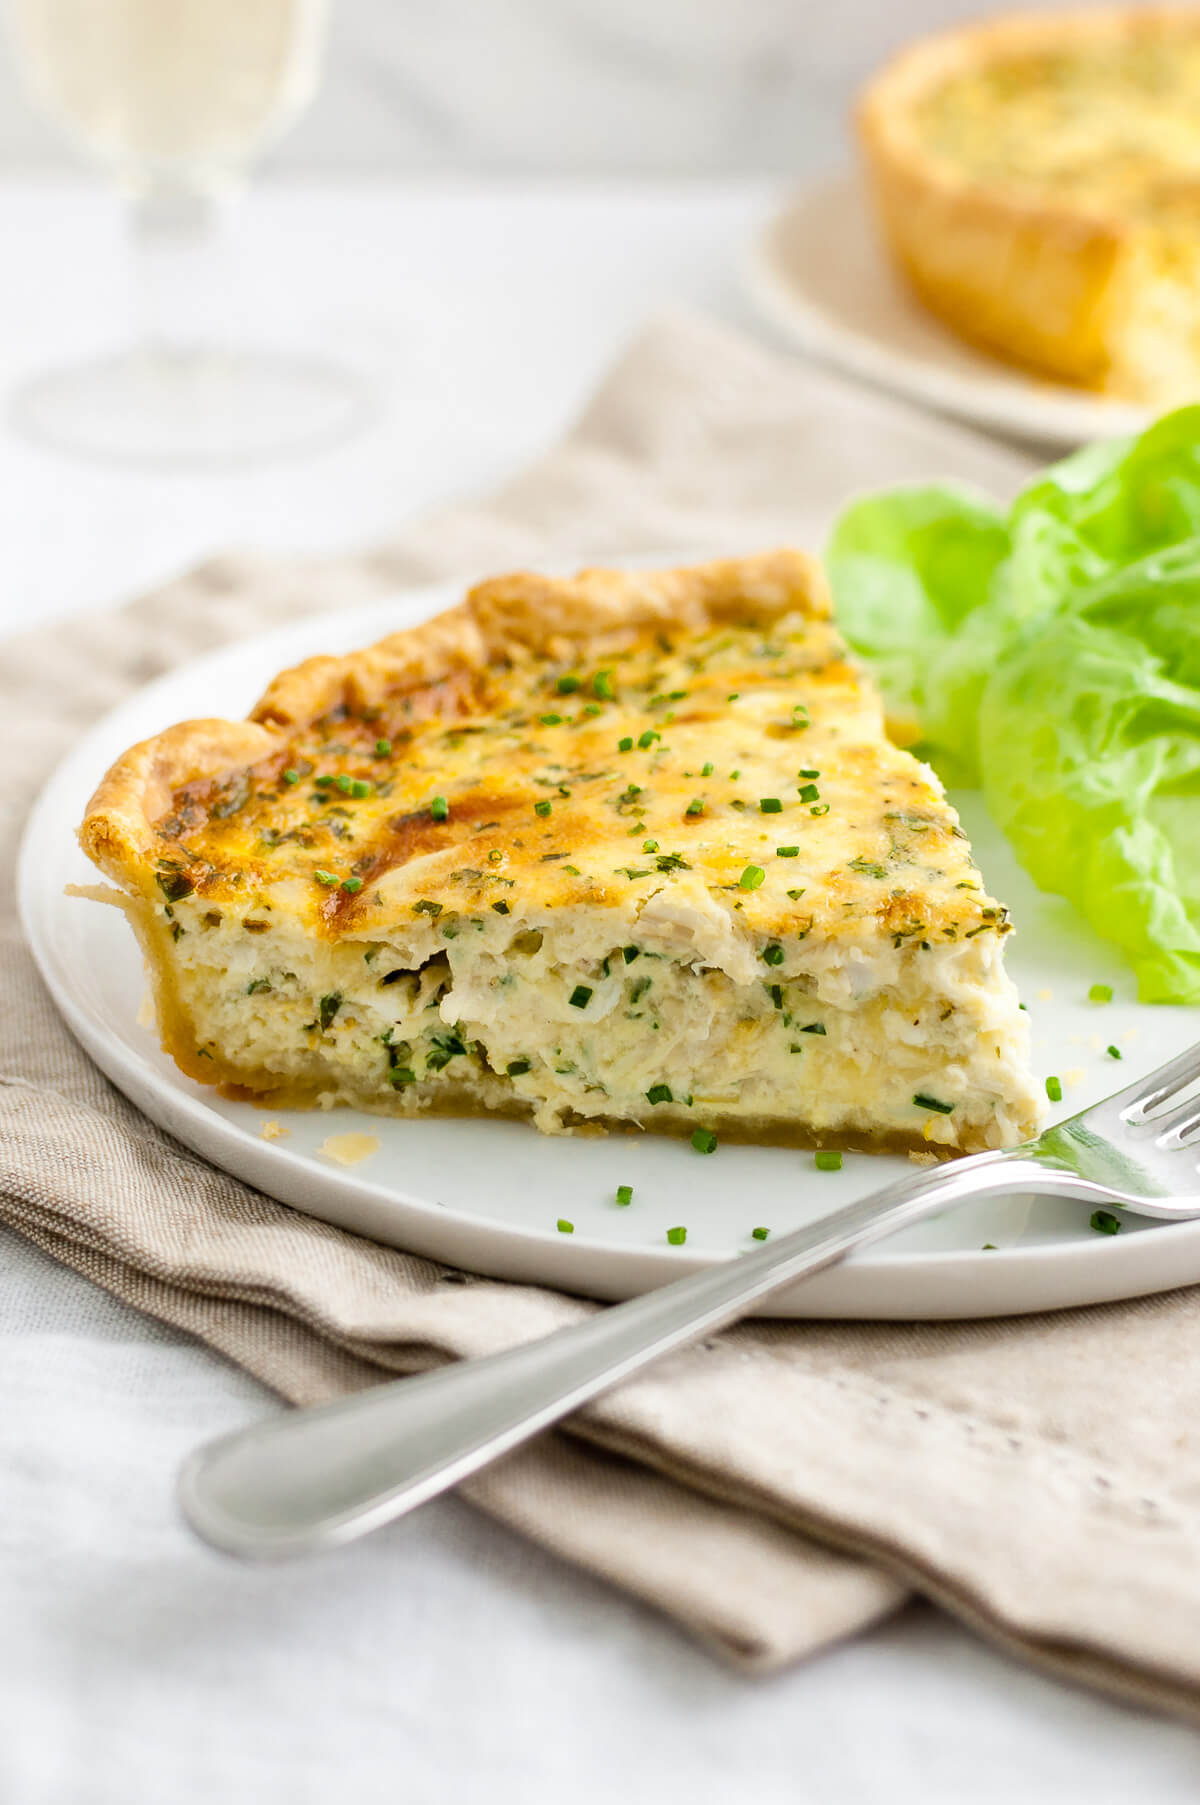 Close-up of a slice of crab quiche on a white plate.